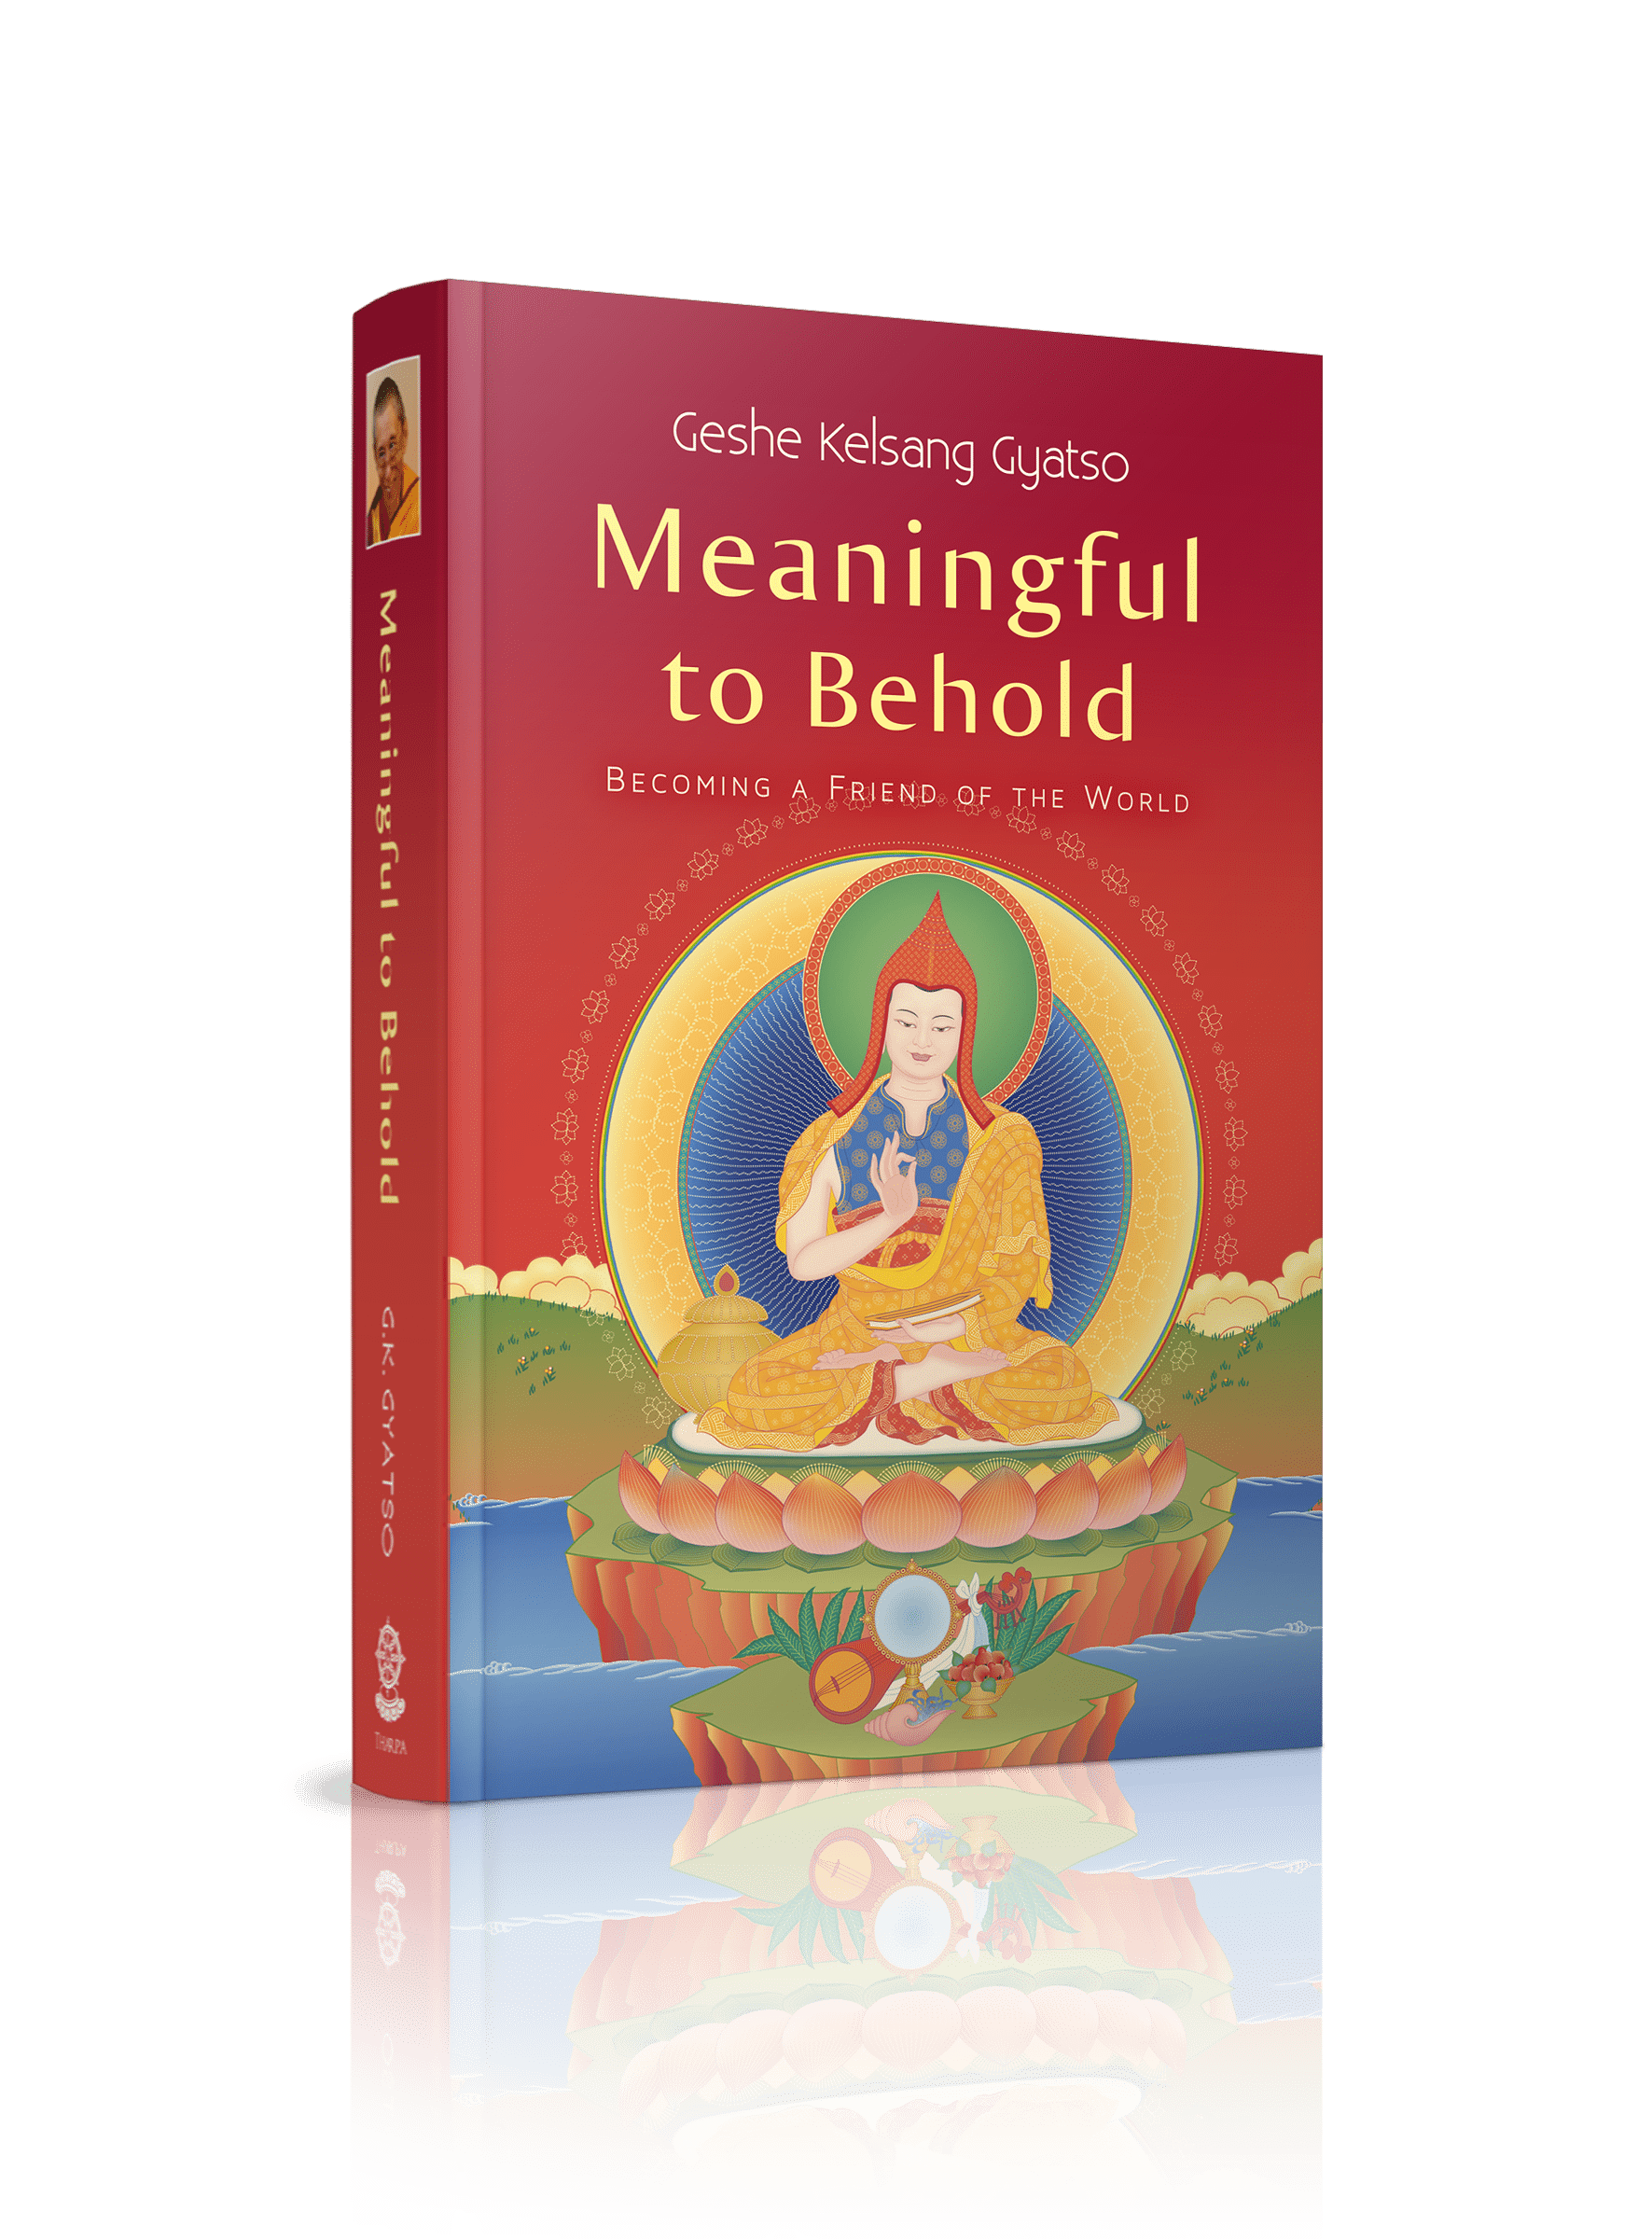 Book Cover - Meaningful to Behold by Geshe Kelsang Gyatso